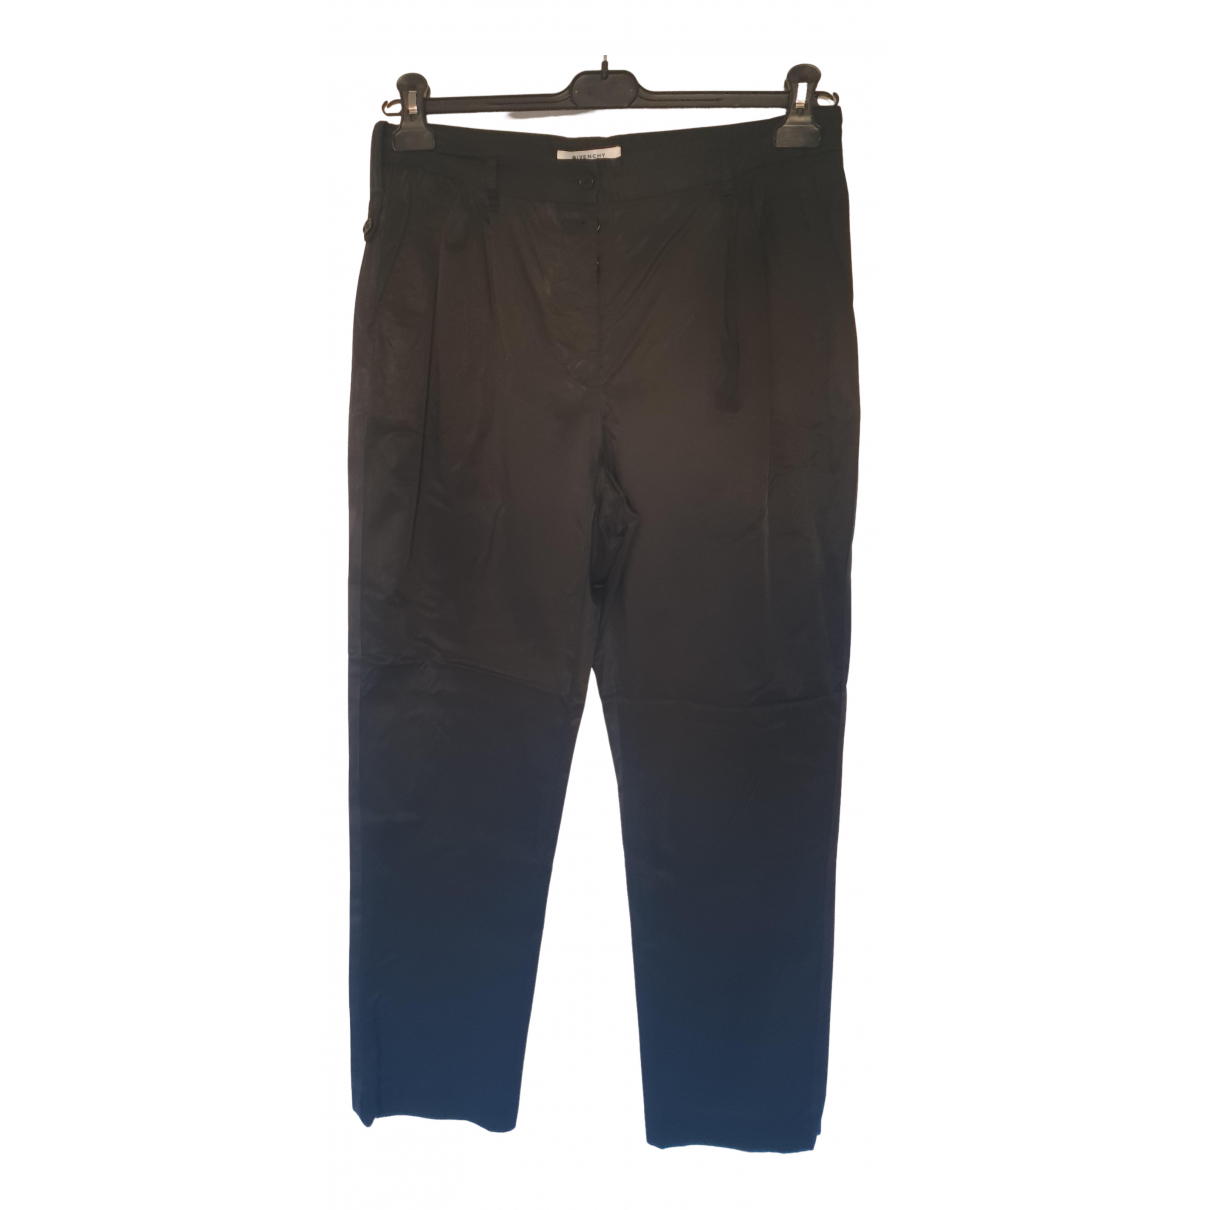 Givenchy \N Black Cotton Trousers for Women 44 FR